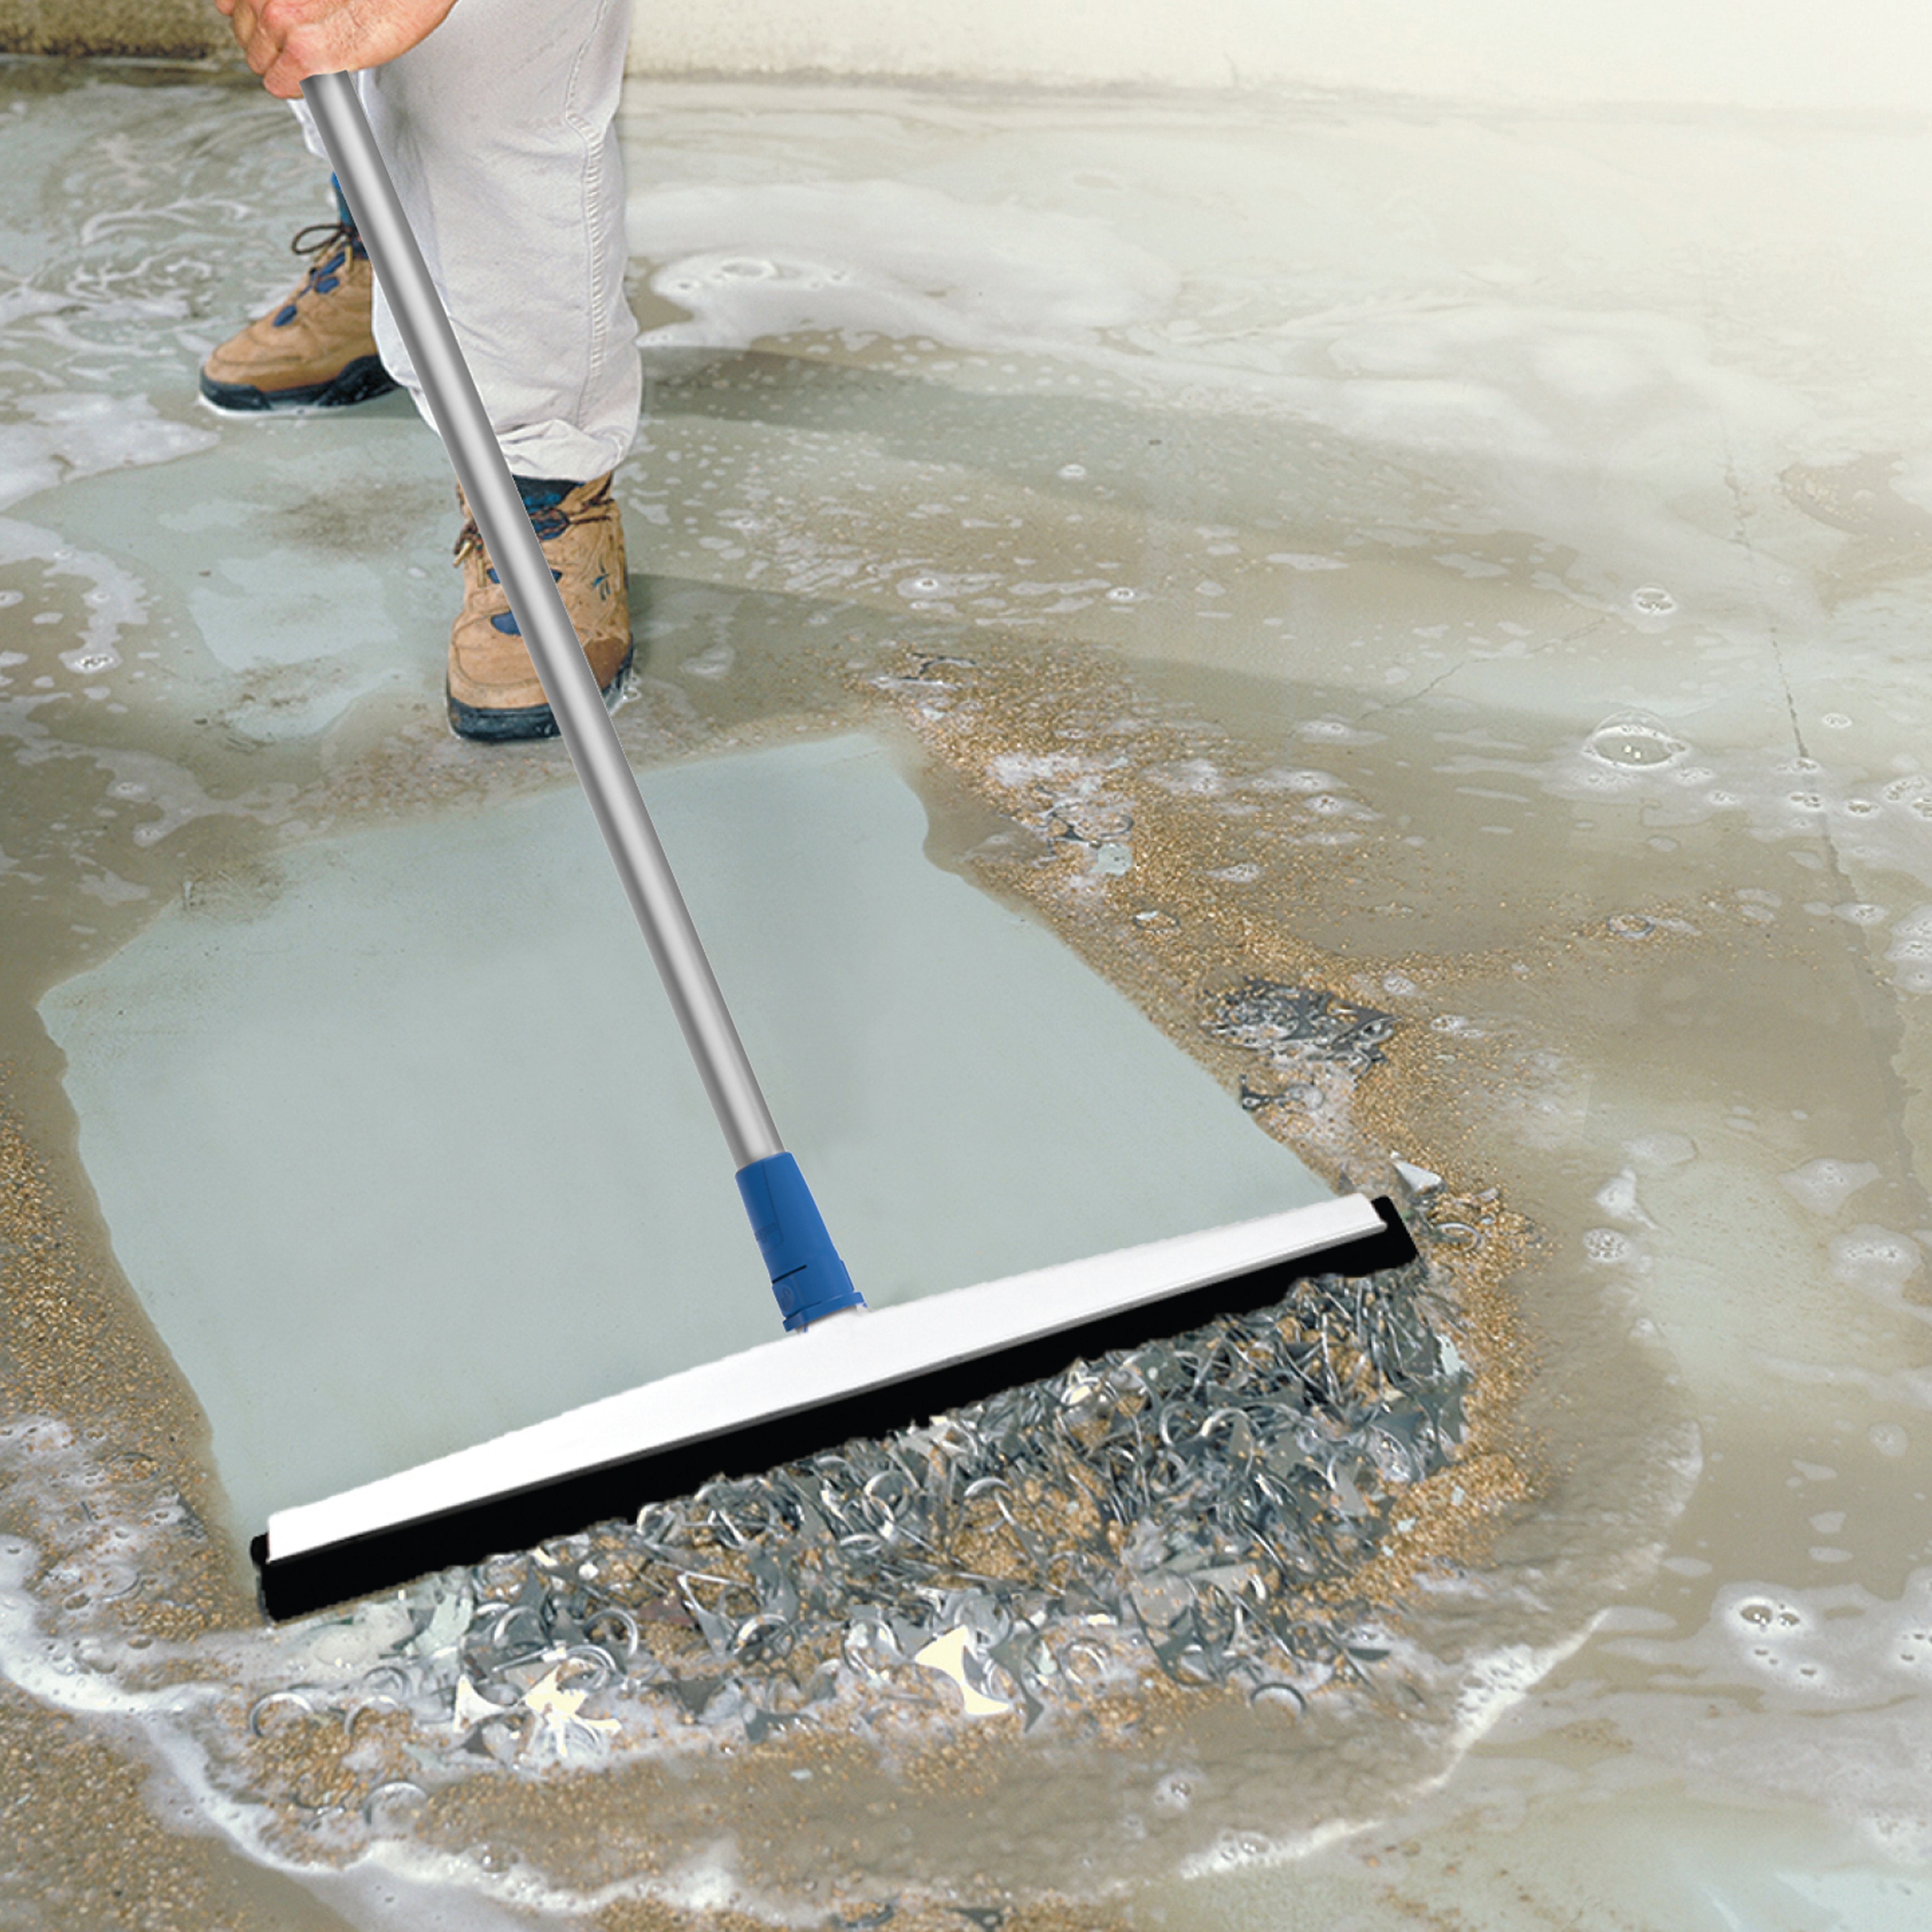 975350_UP_LKO_22 Foam Floor Squeegee_life_1000